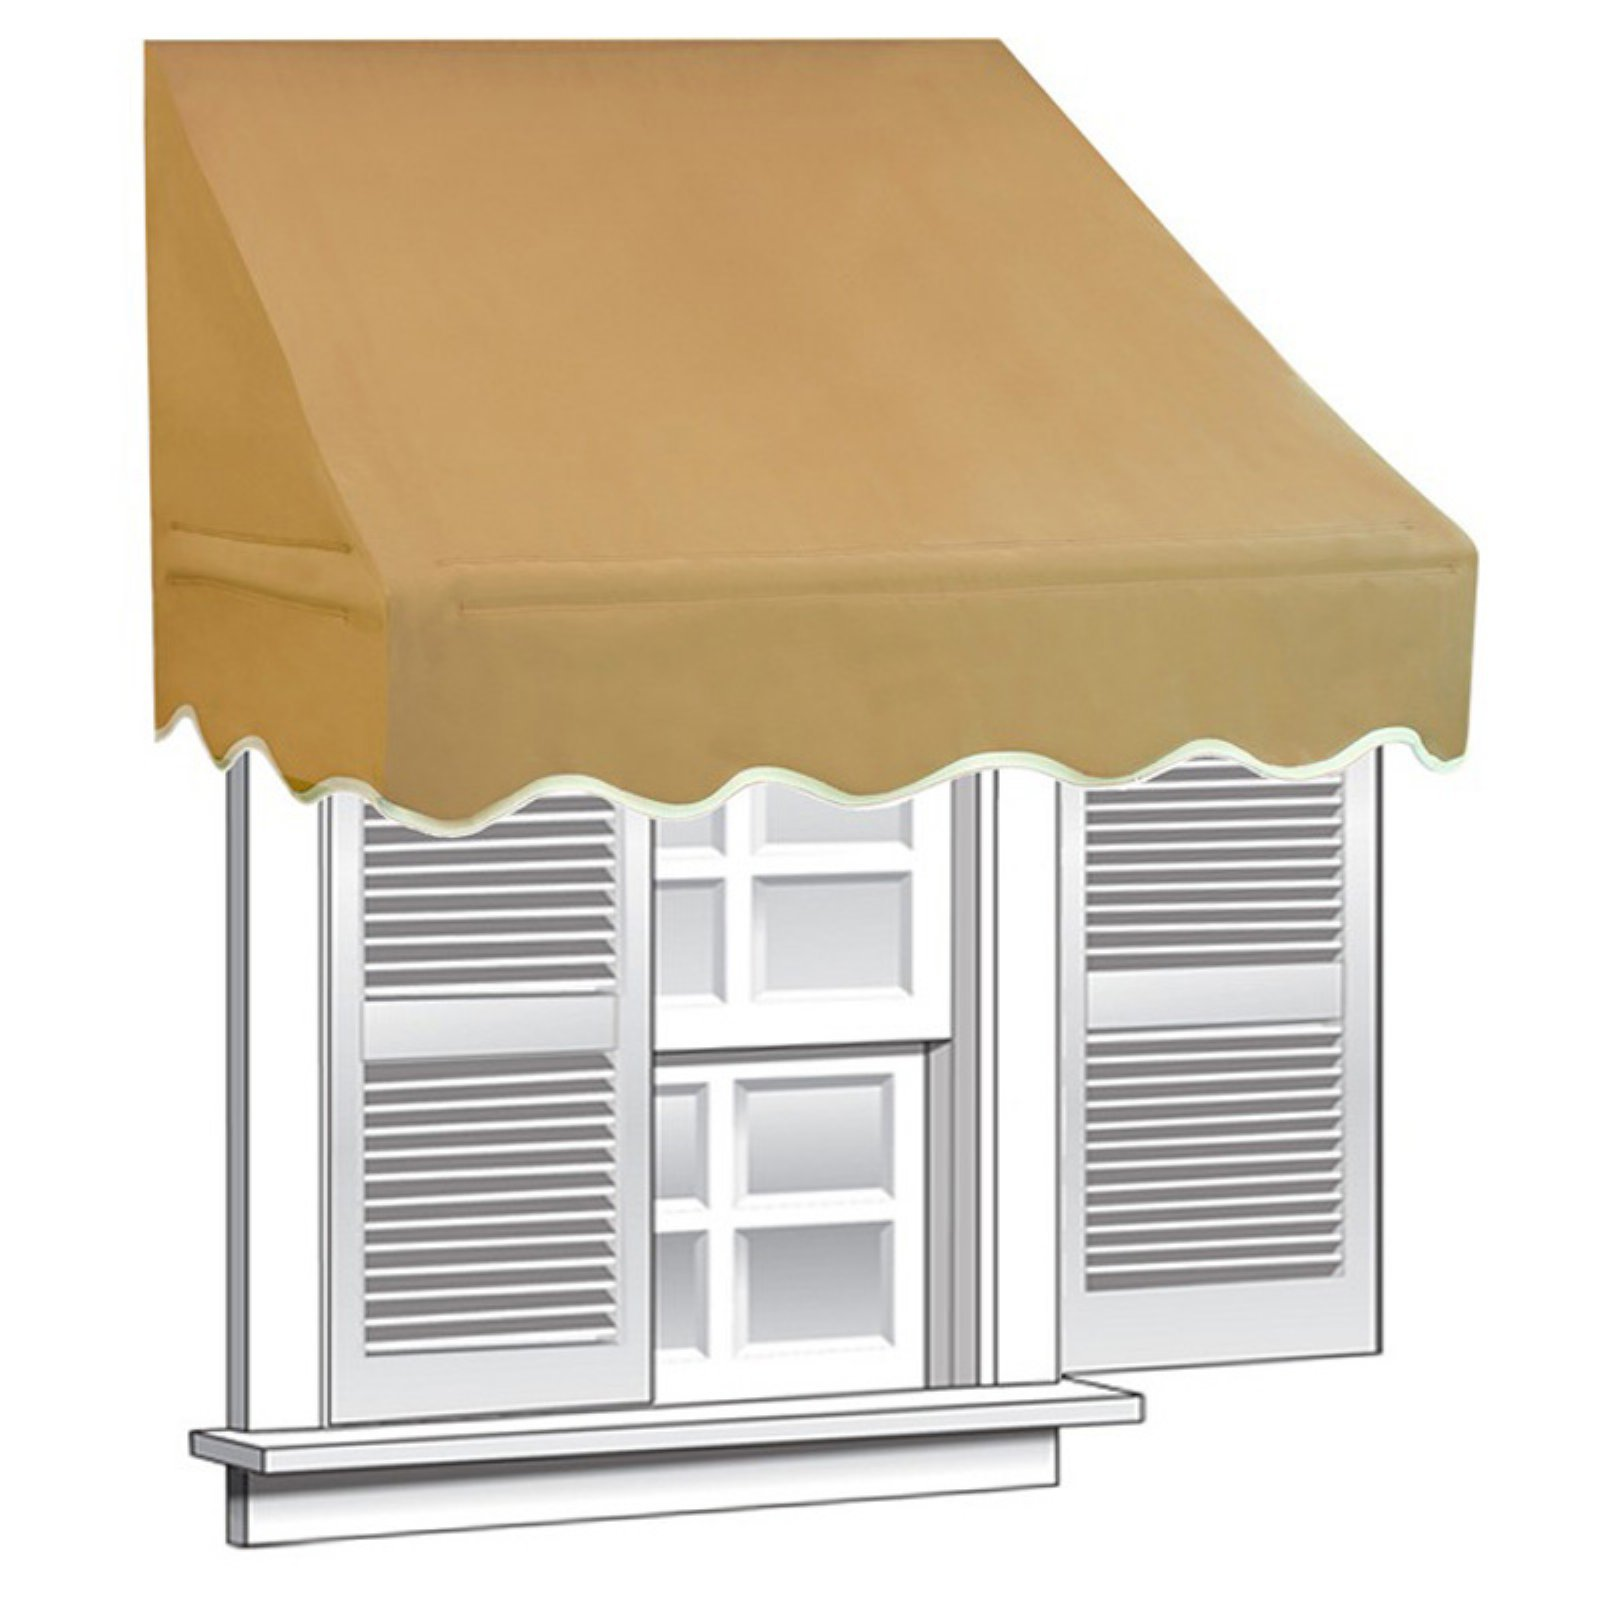 ALEKO 8'x2' Window Awning Door Canopy (16 sq. ft Coverage), Sand Color